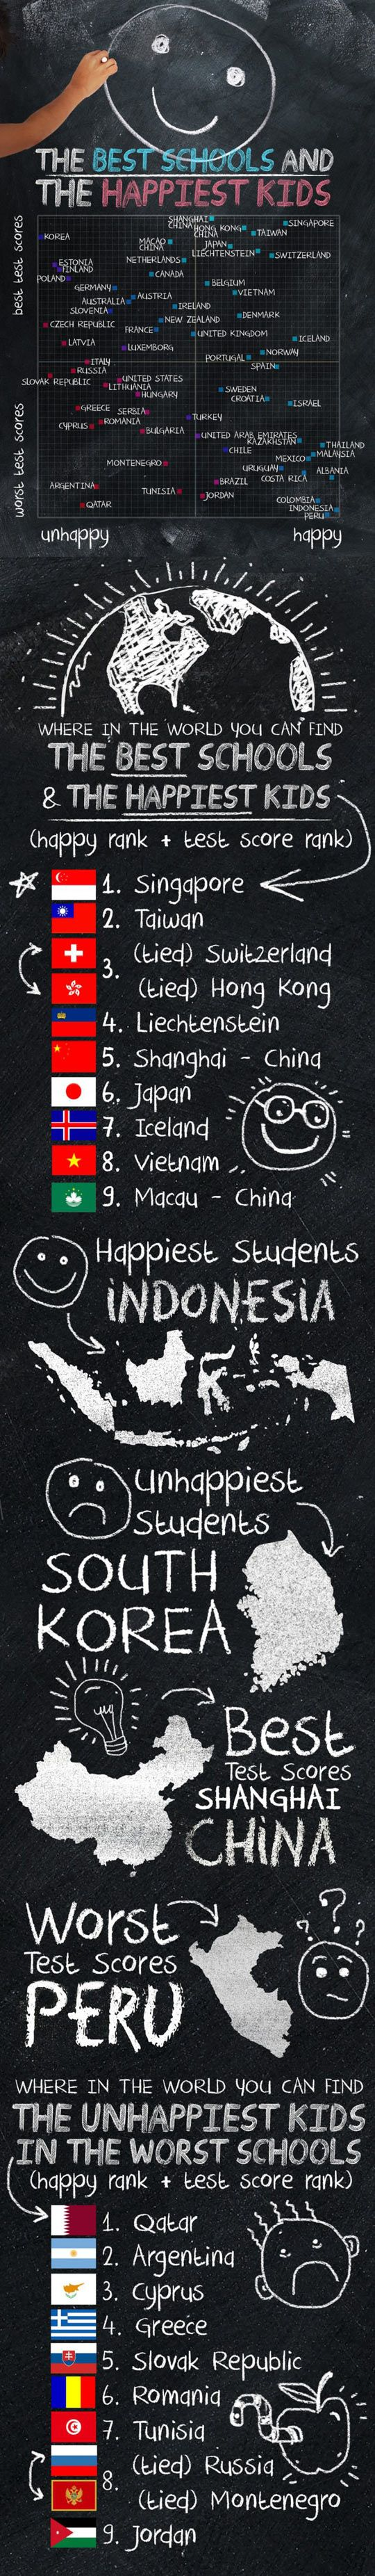 The best schools and the happiest kids. THAT'S IT I'M MOVING TO SWITZERLAND.